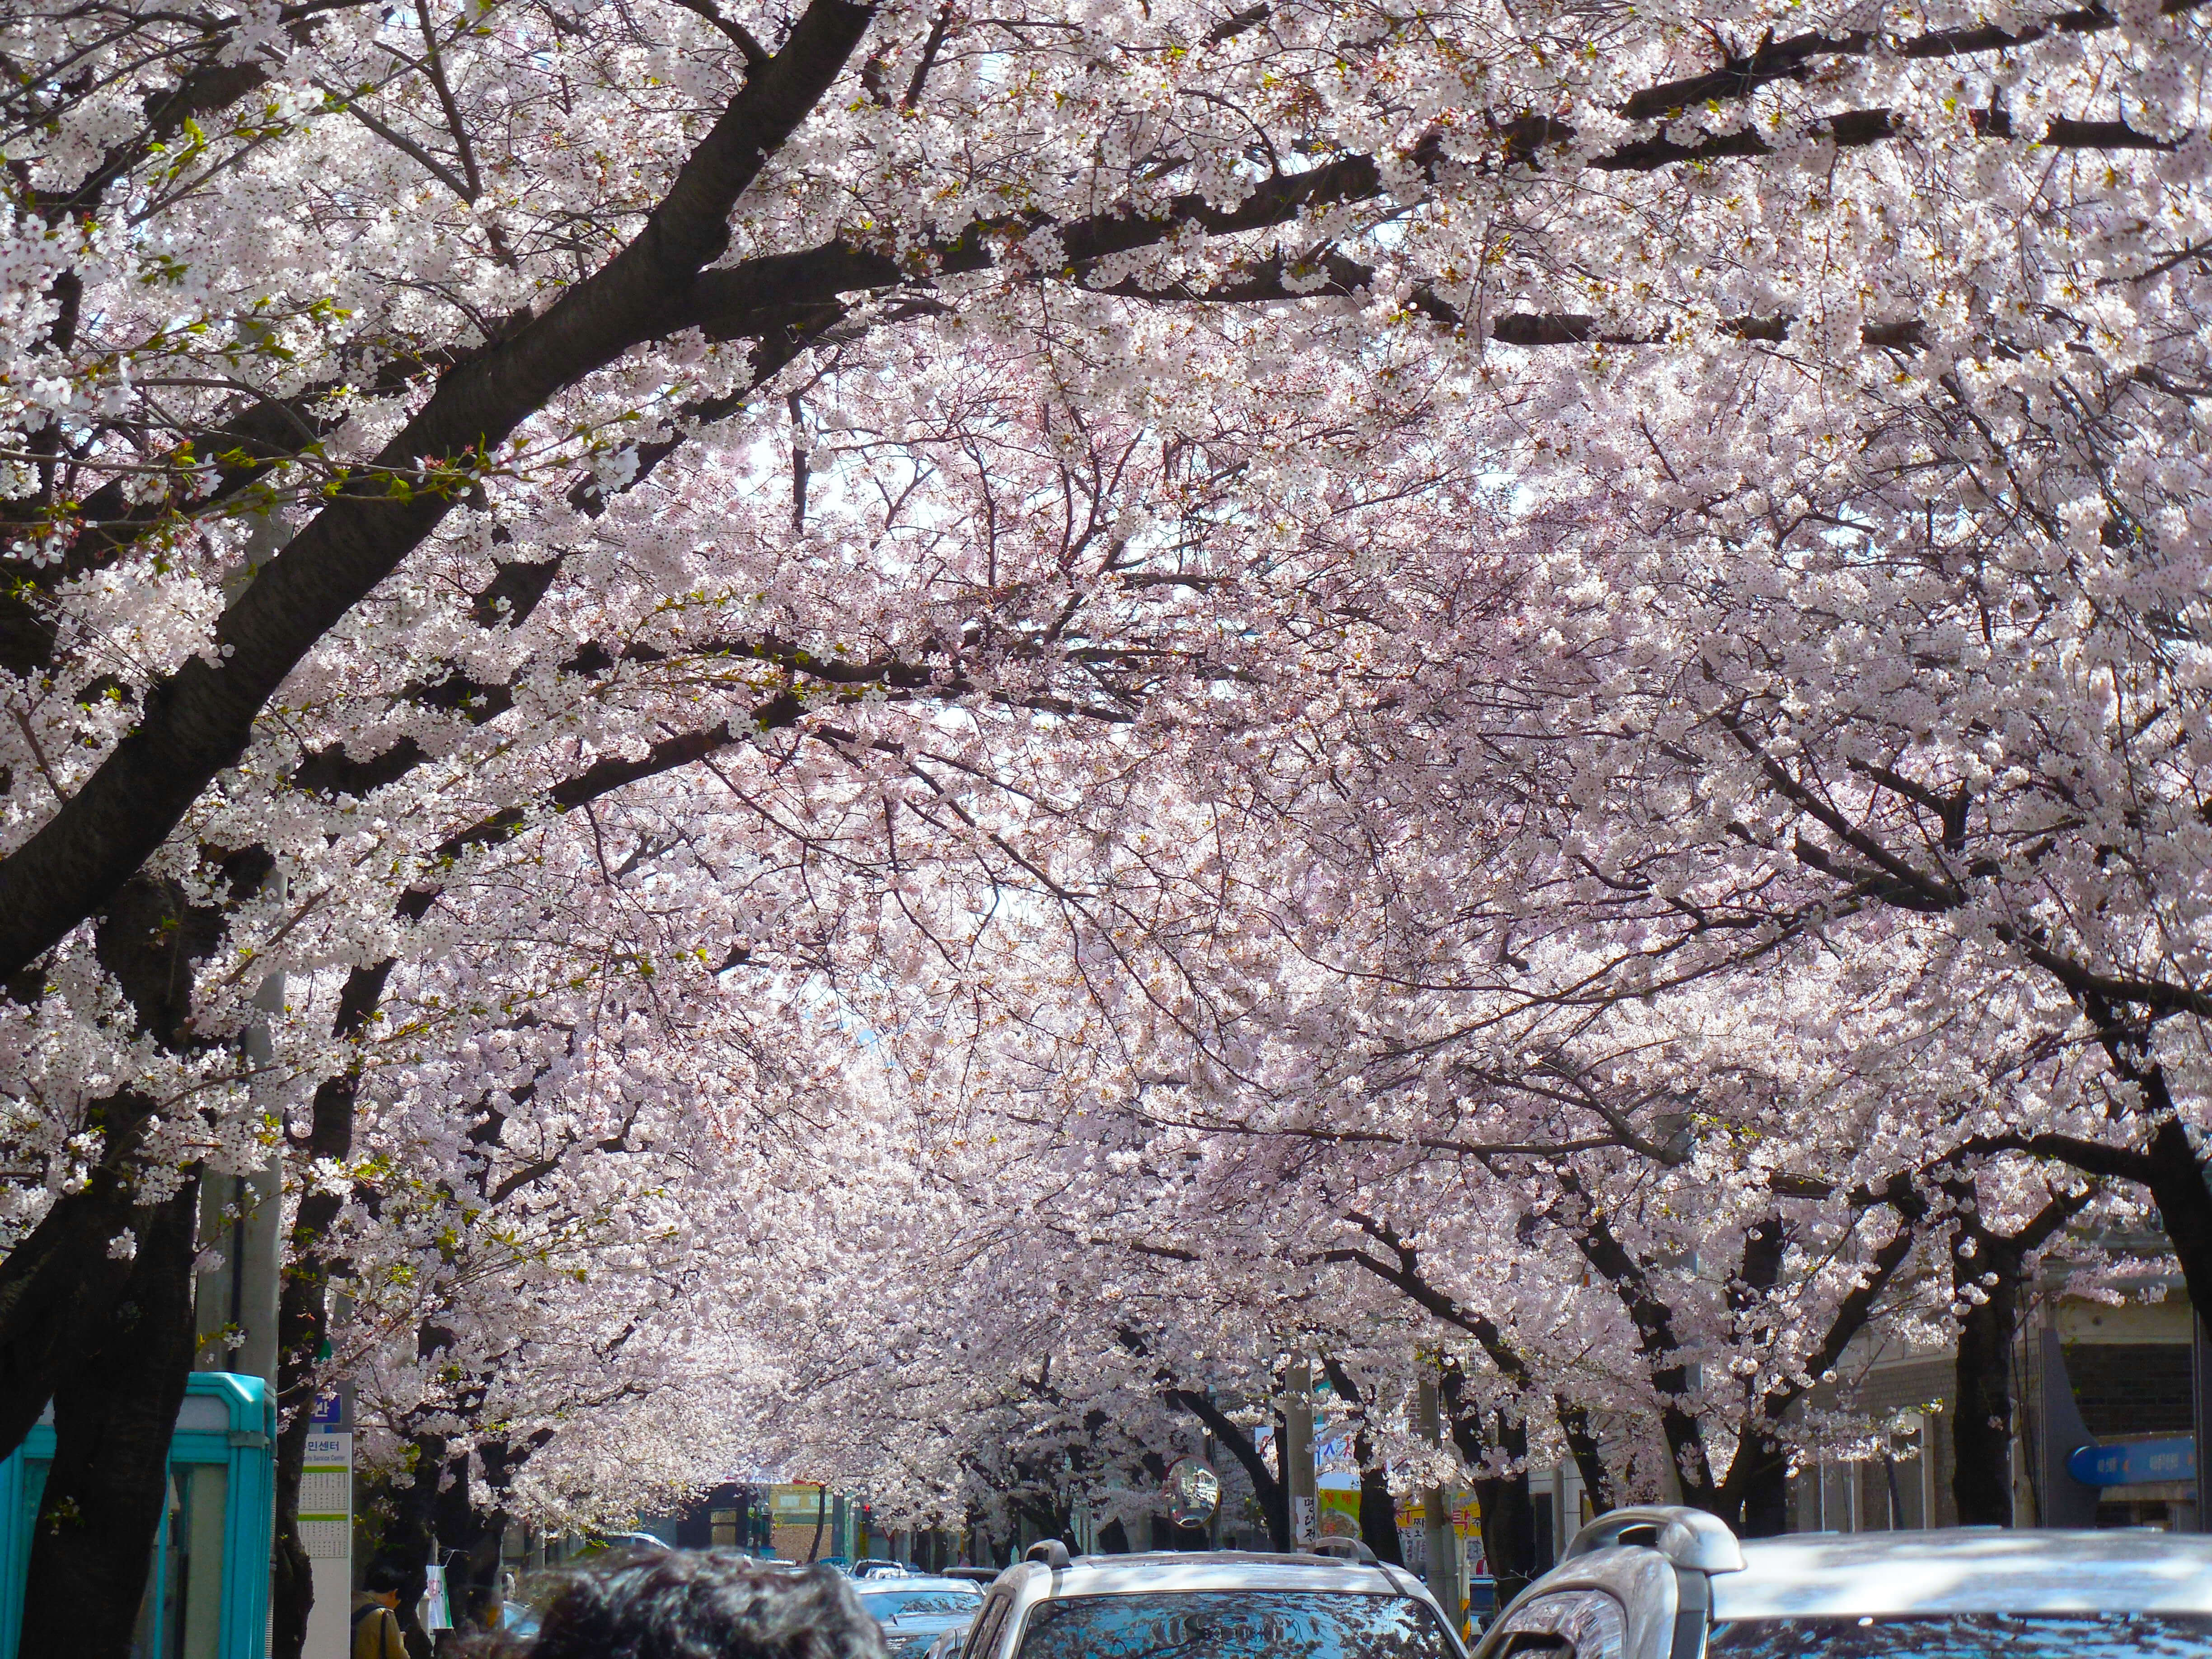 Cherry Blossoms over the road